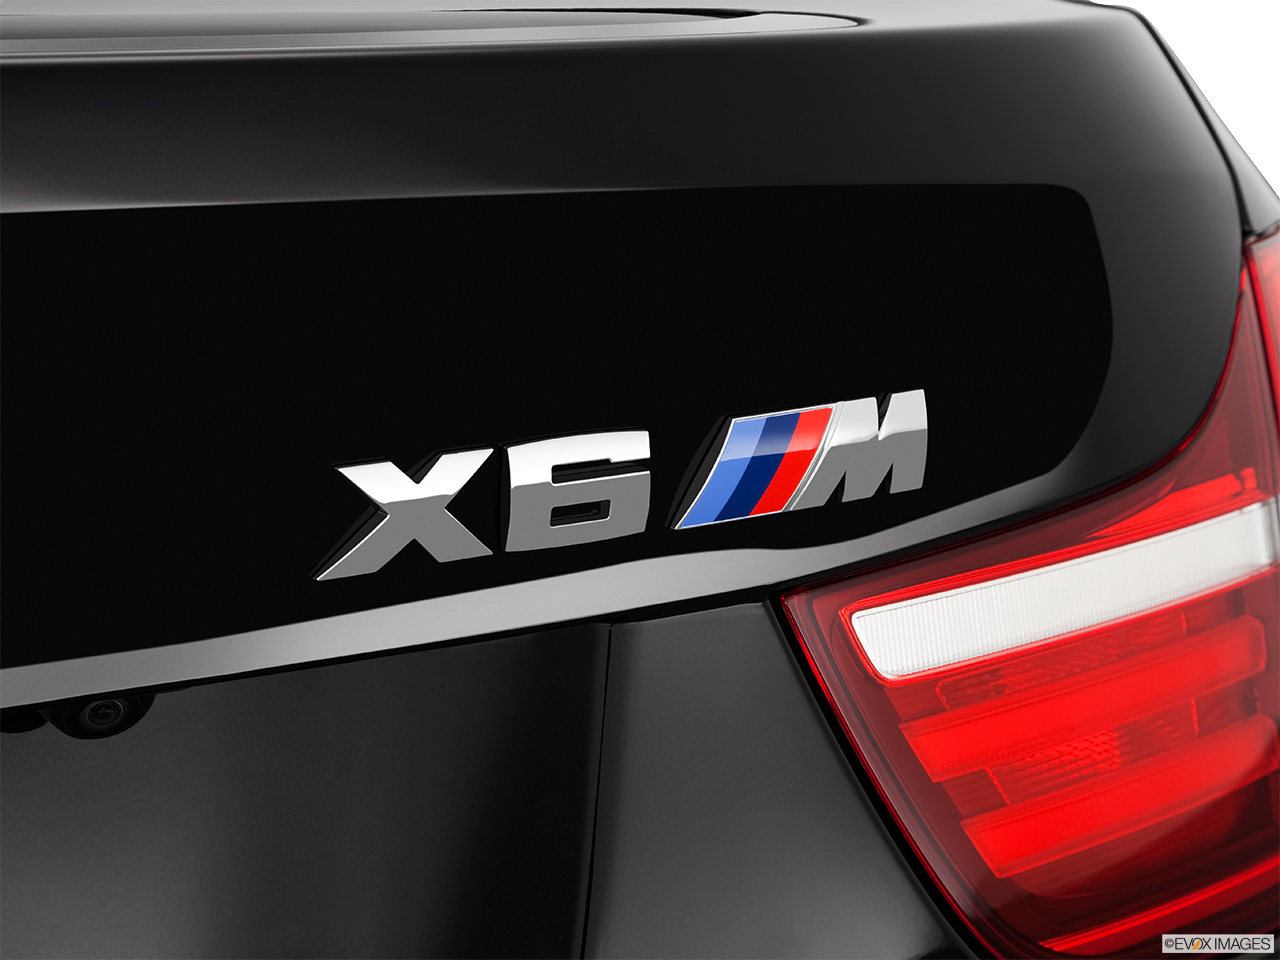 2015 Bmw X6 4 Door Xdrive50i Rear Model Badge Emblem